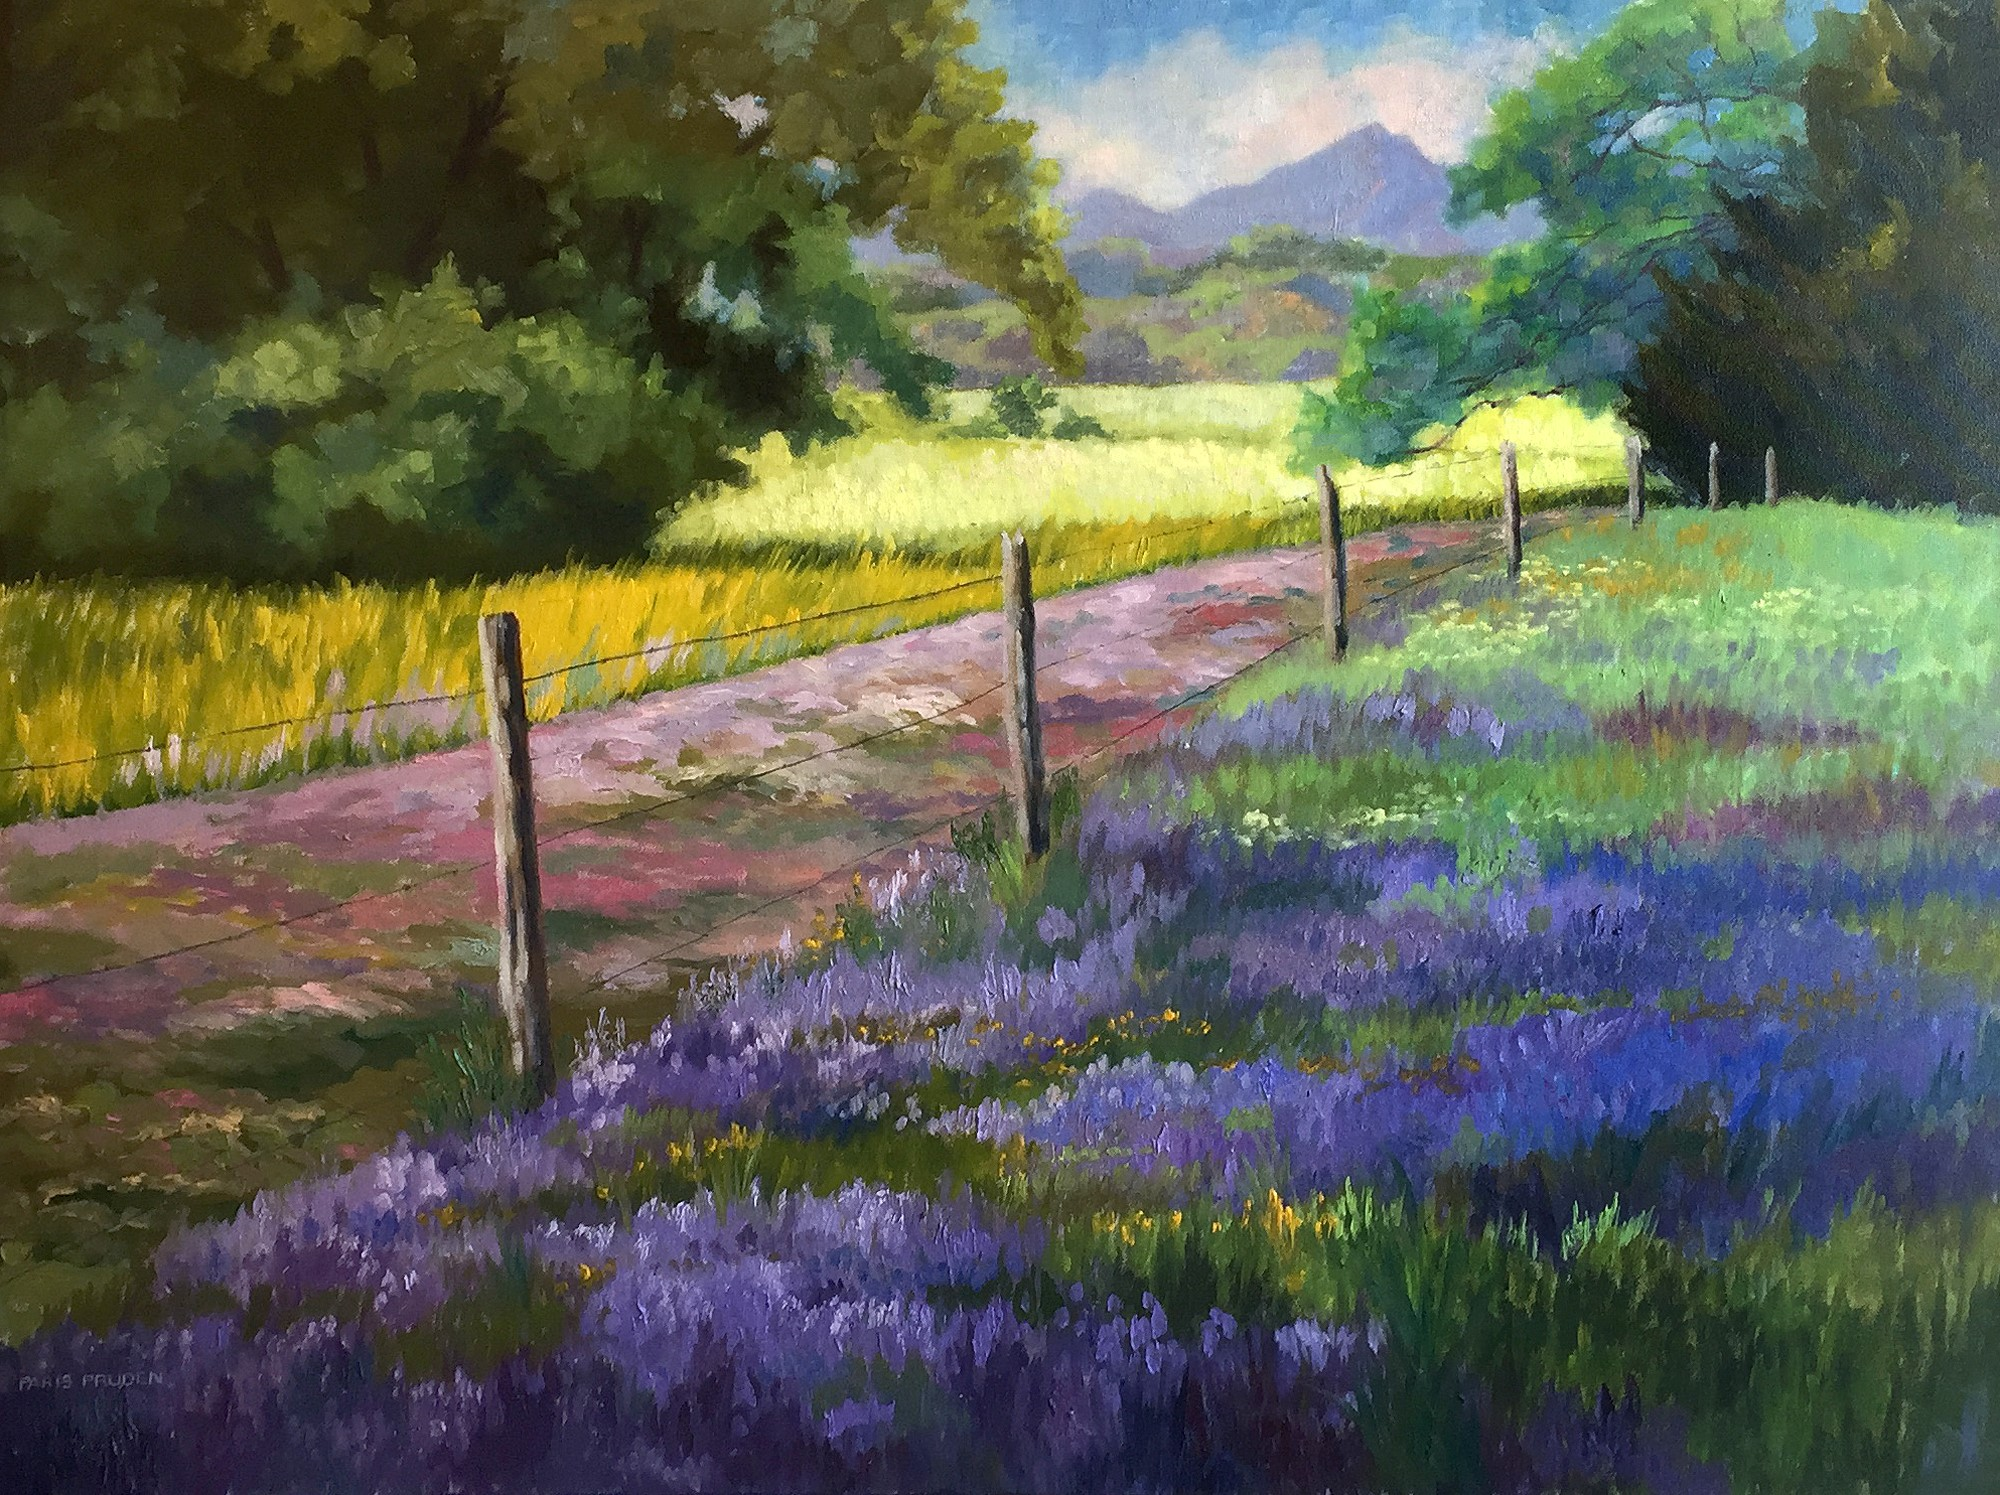 Flowers In The Foothills, 2017 by Nancy Paris Pruden